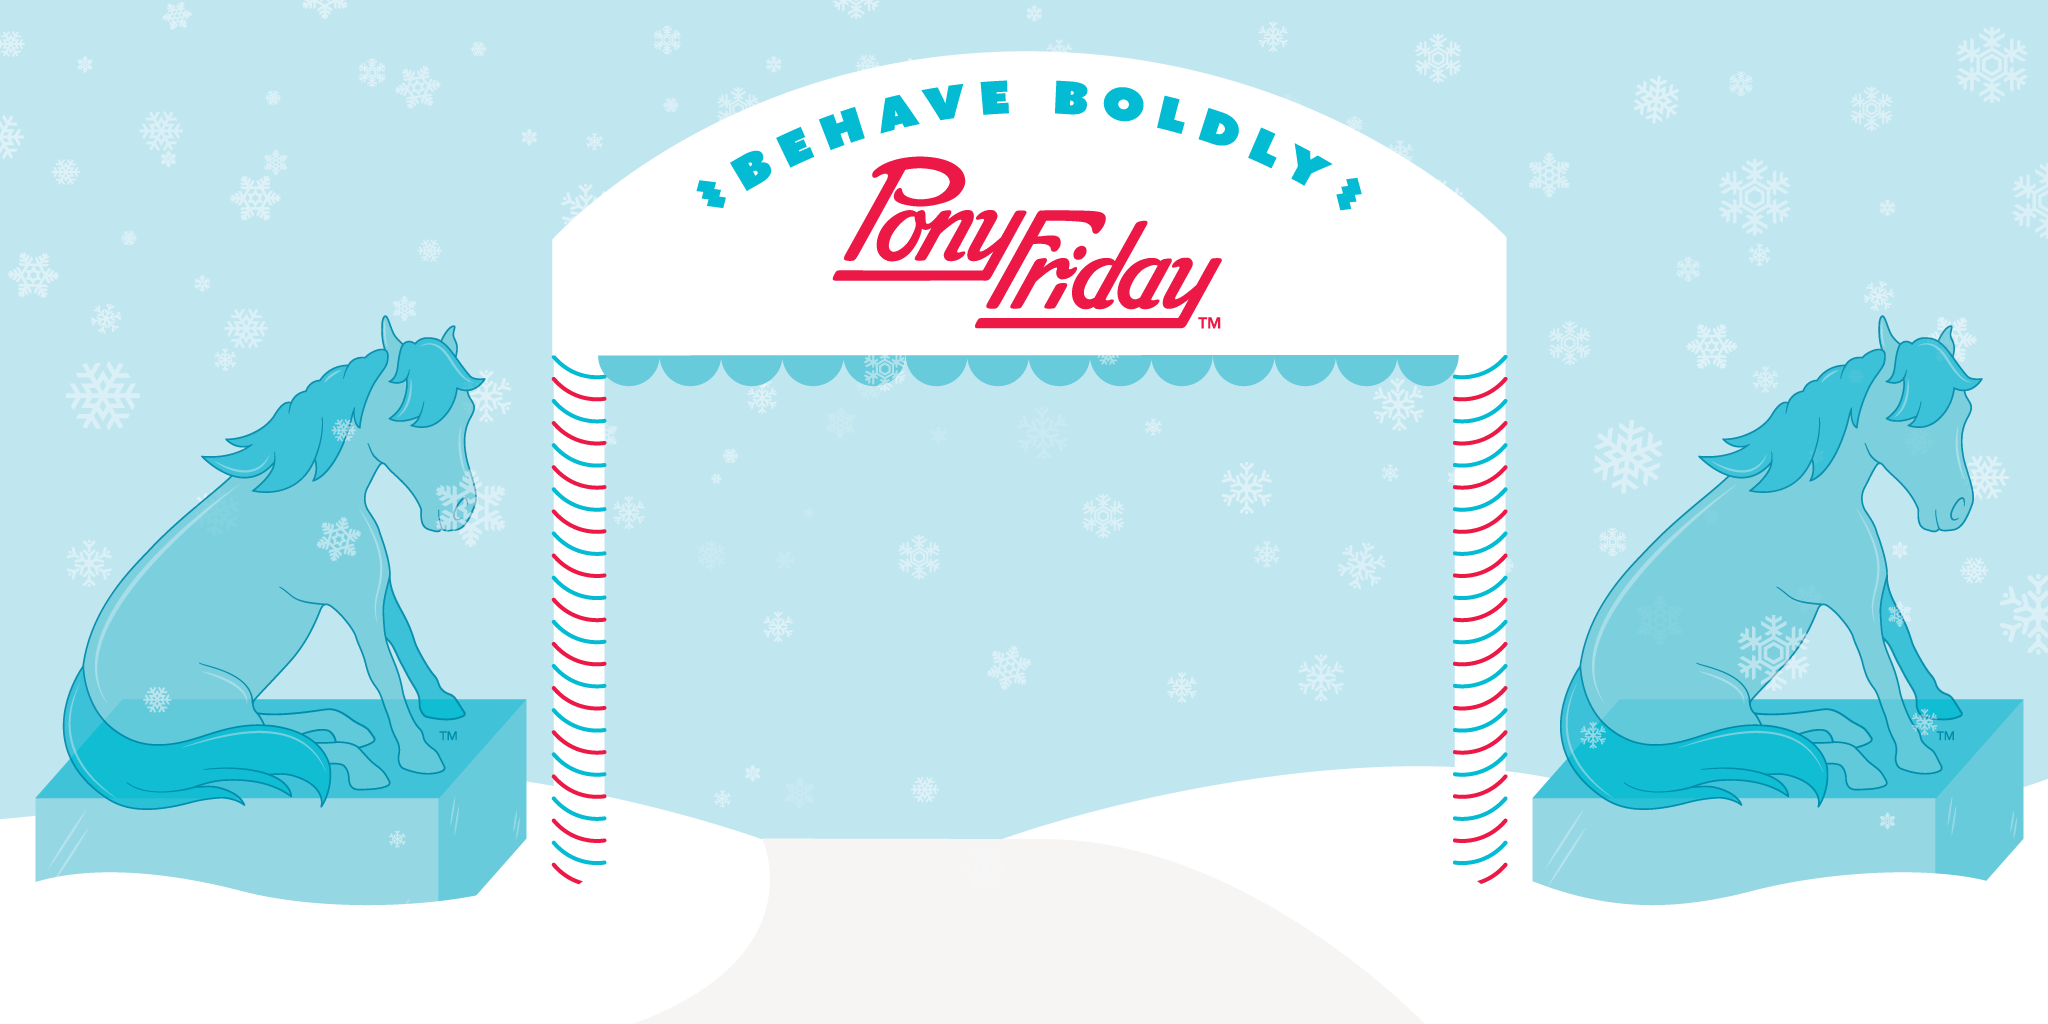 Pony-Friday-Ice-Sculpture-Winter-Wonderland-Behave-Boldly-Horses-Blog-Header.png